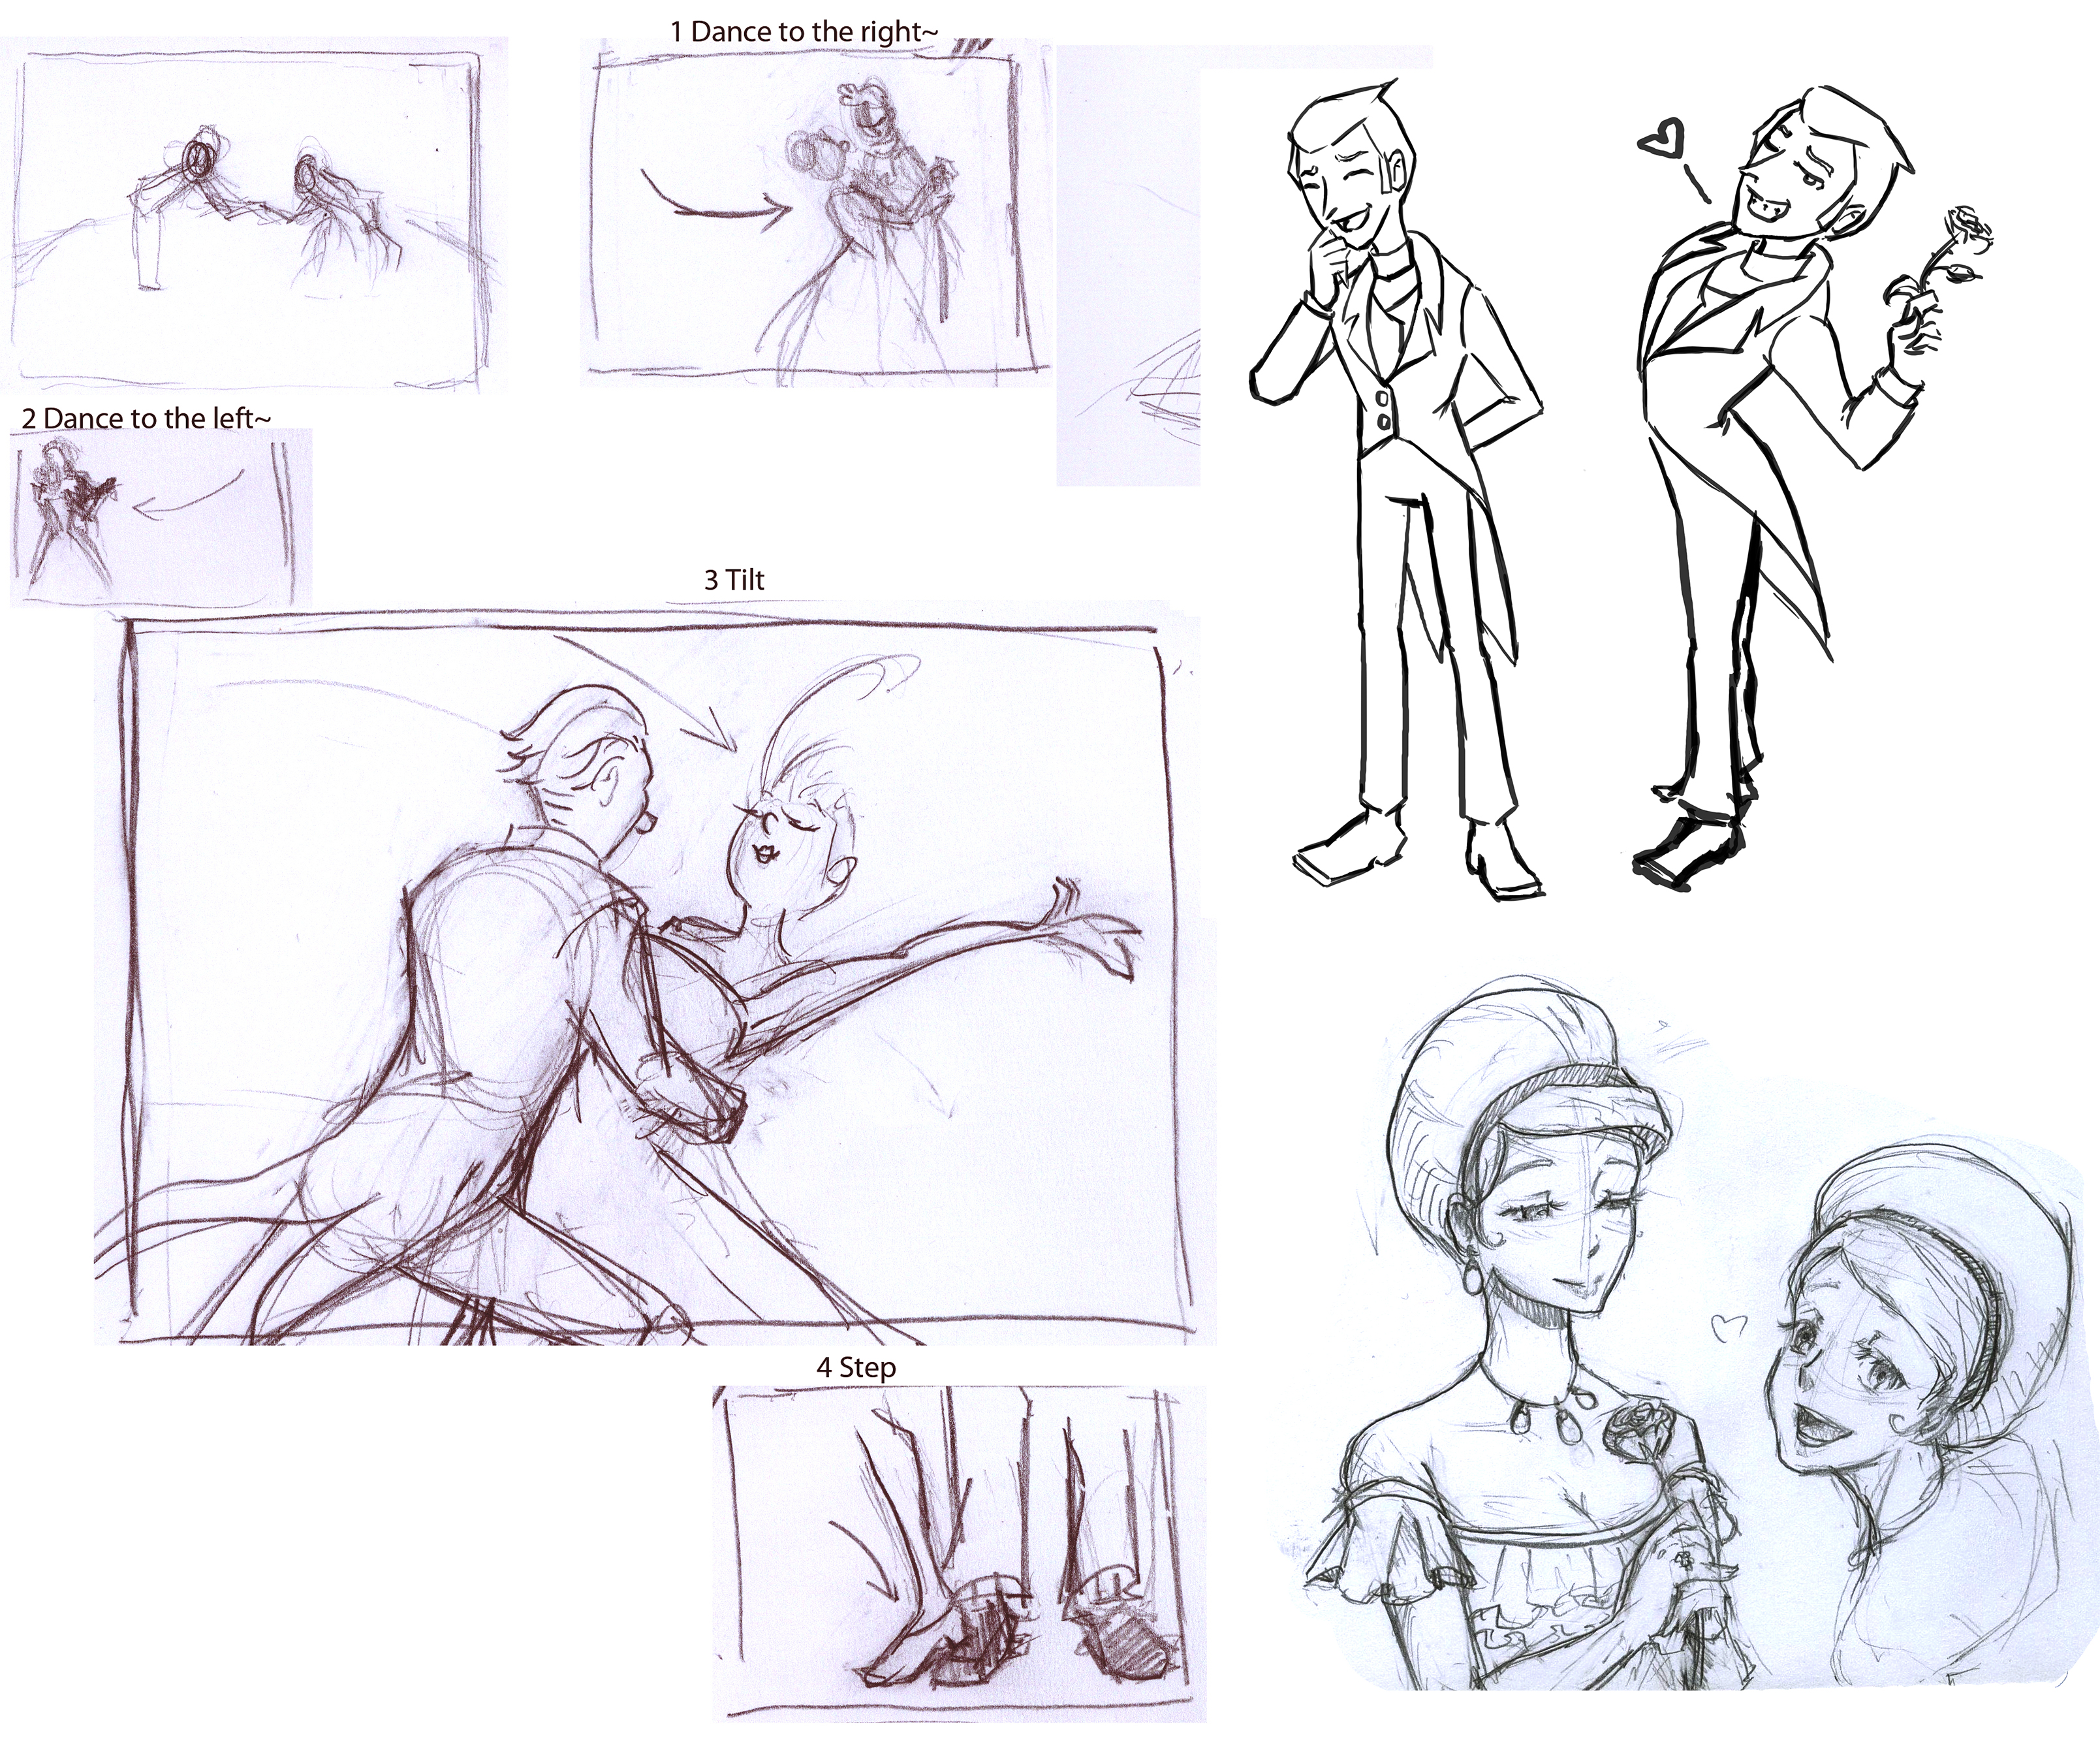 Storyboard and main characters